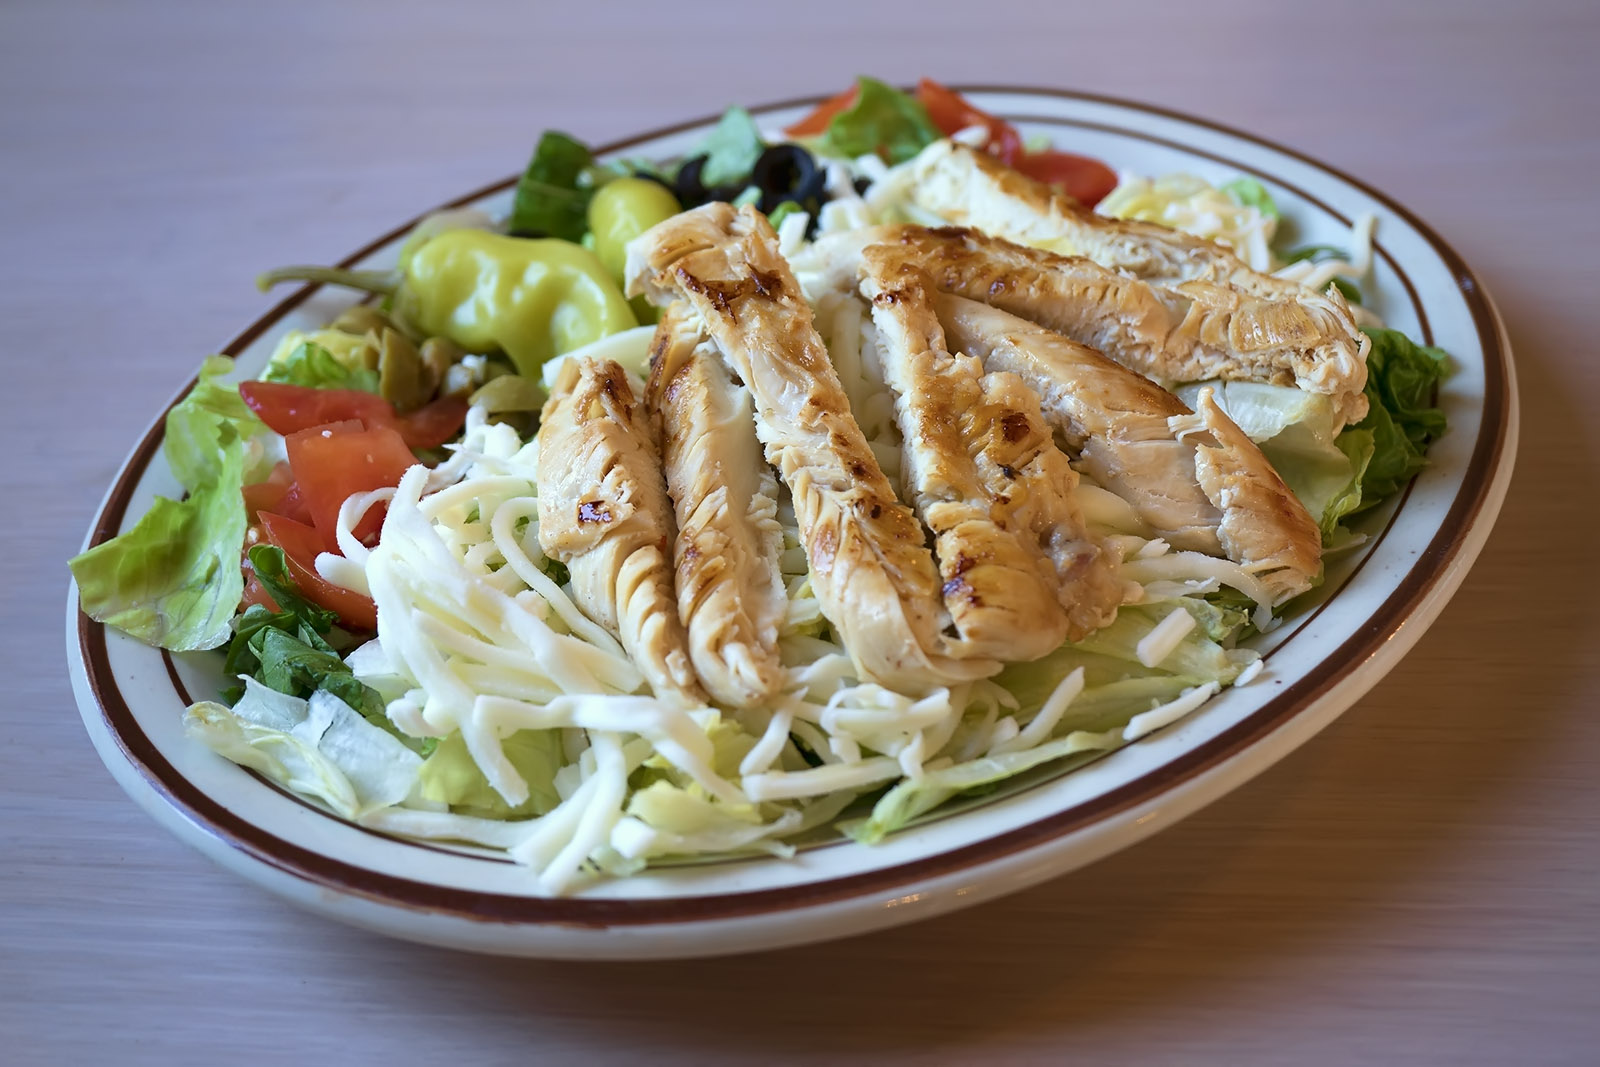 WEDNESDAY: Grilled Chicken Salad Image